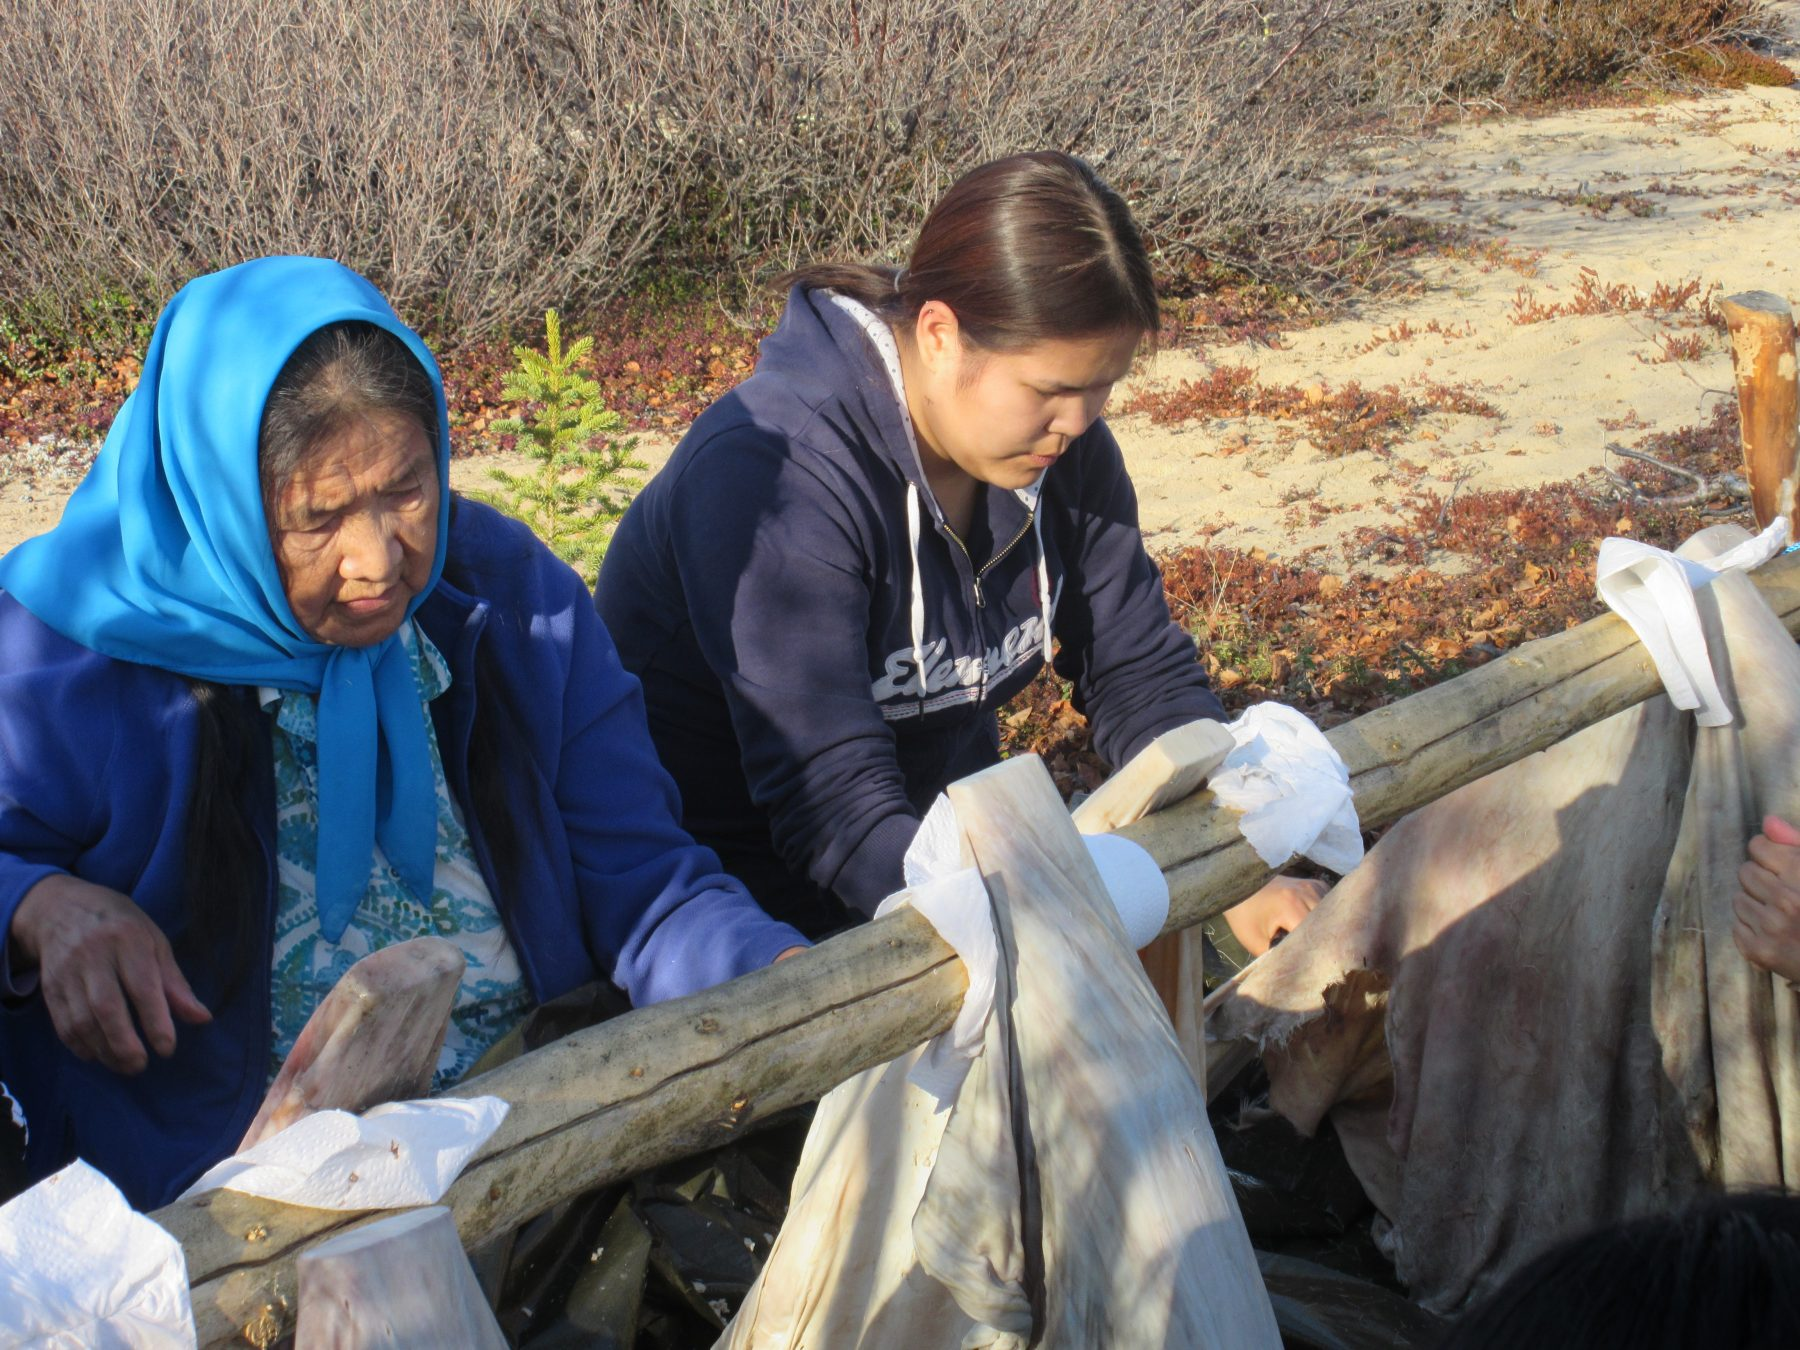 Photograph of an Elder from Wekweètı̀ teaching a younger member of the community to scrape and tan Caribou hides. Hides are soaked and stretched over a board before being scraped with a k'edze, tool made from a Caribou's lower leg bone.